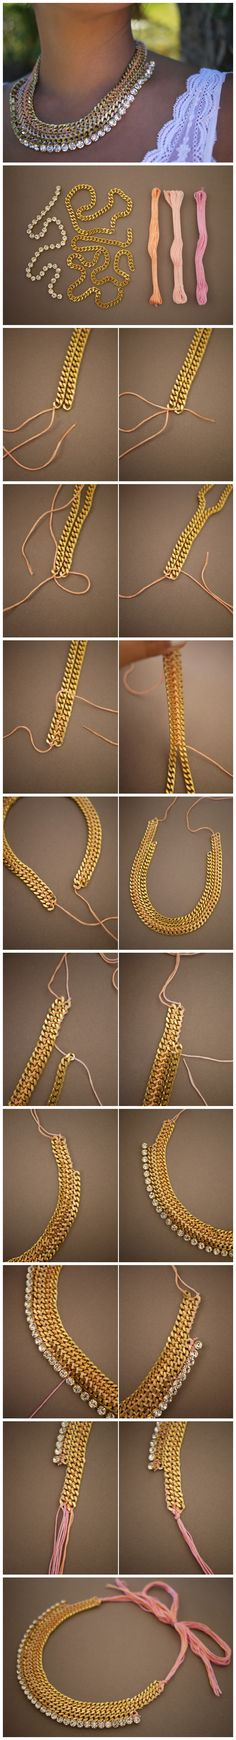 DIY necklace with chain!see detailed instructions!find all the materials you need to make your own one @ www.nikolisgroup.com